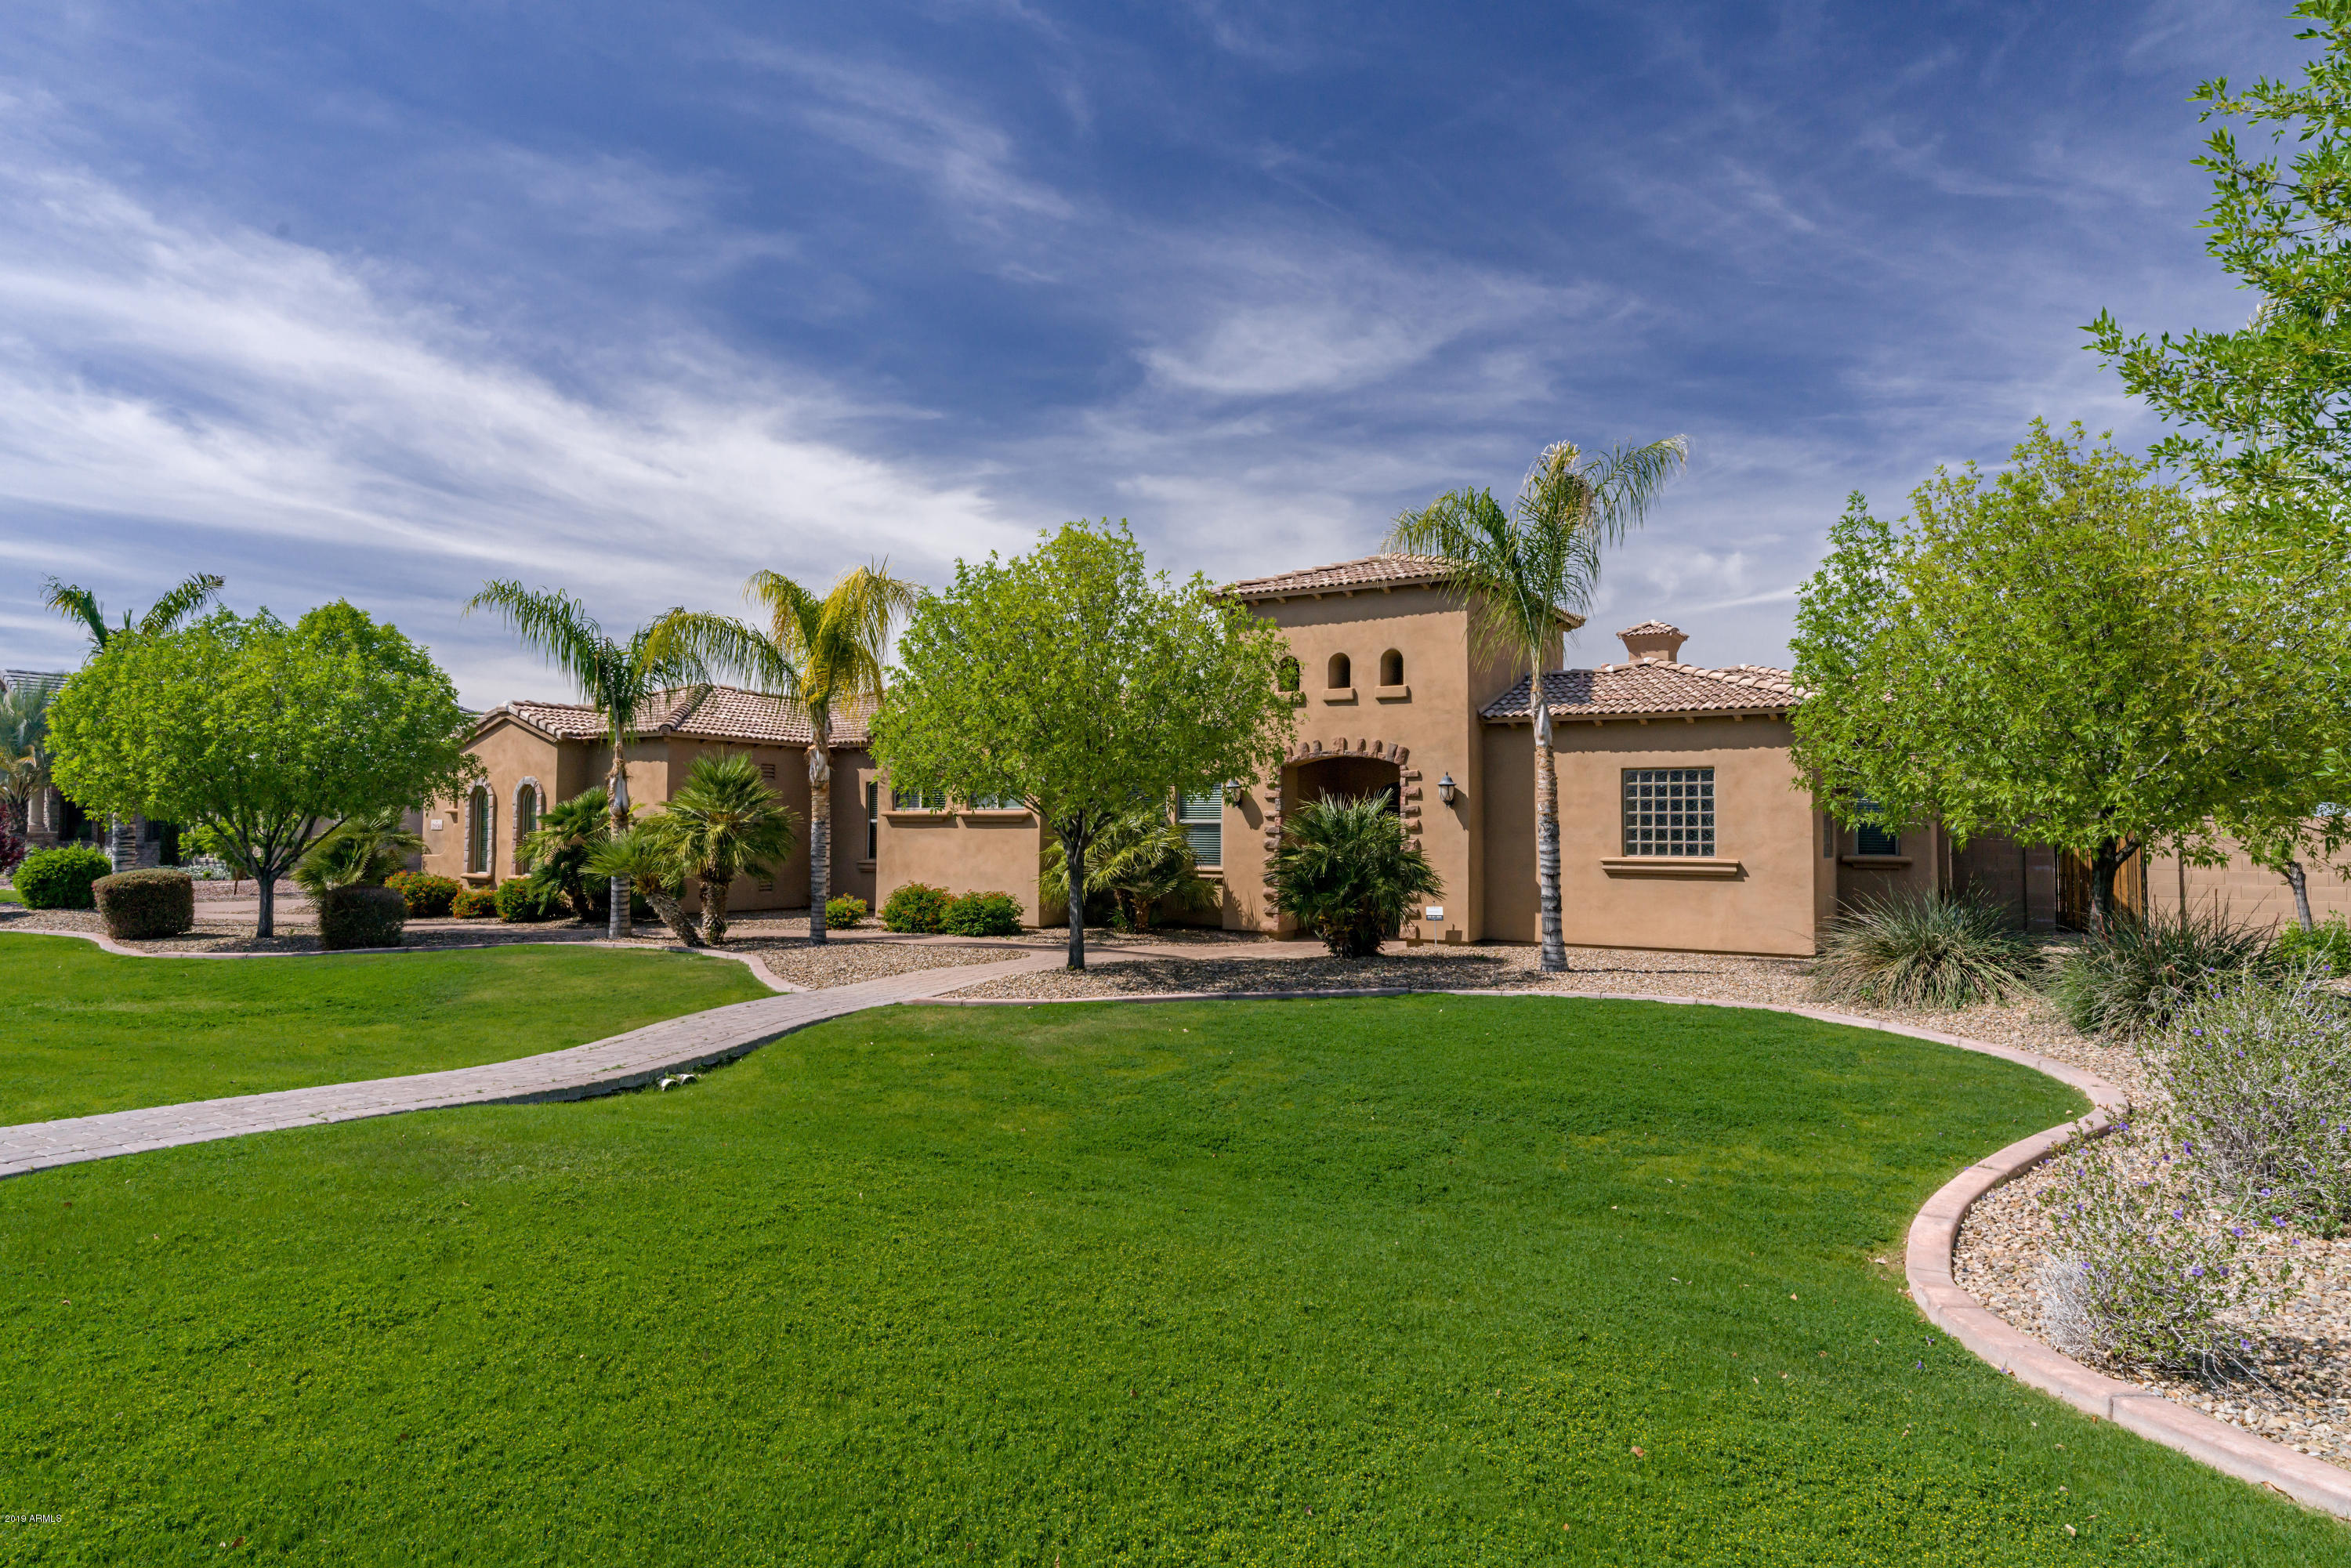 Photo of 2950 E LATHAM Way, Gilbert, AZ 85297